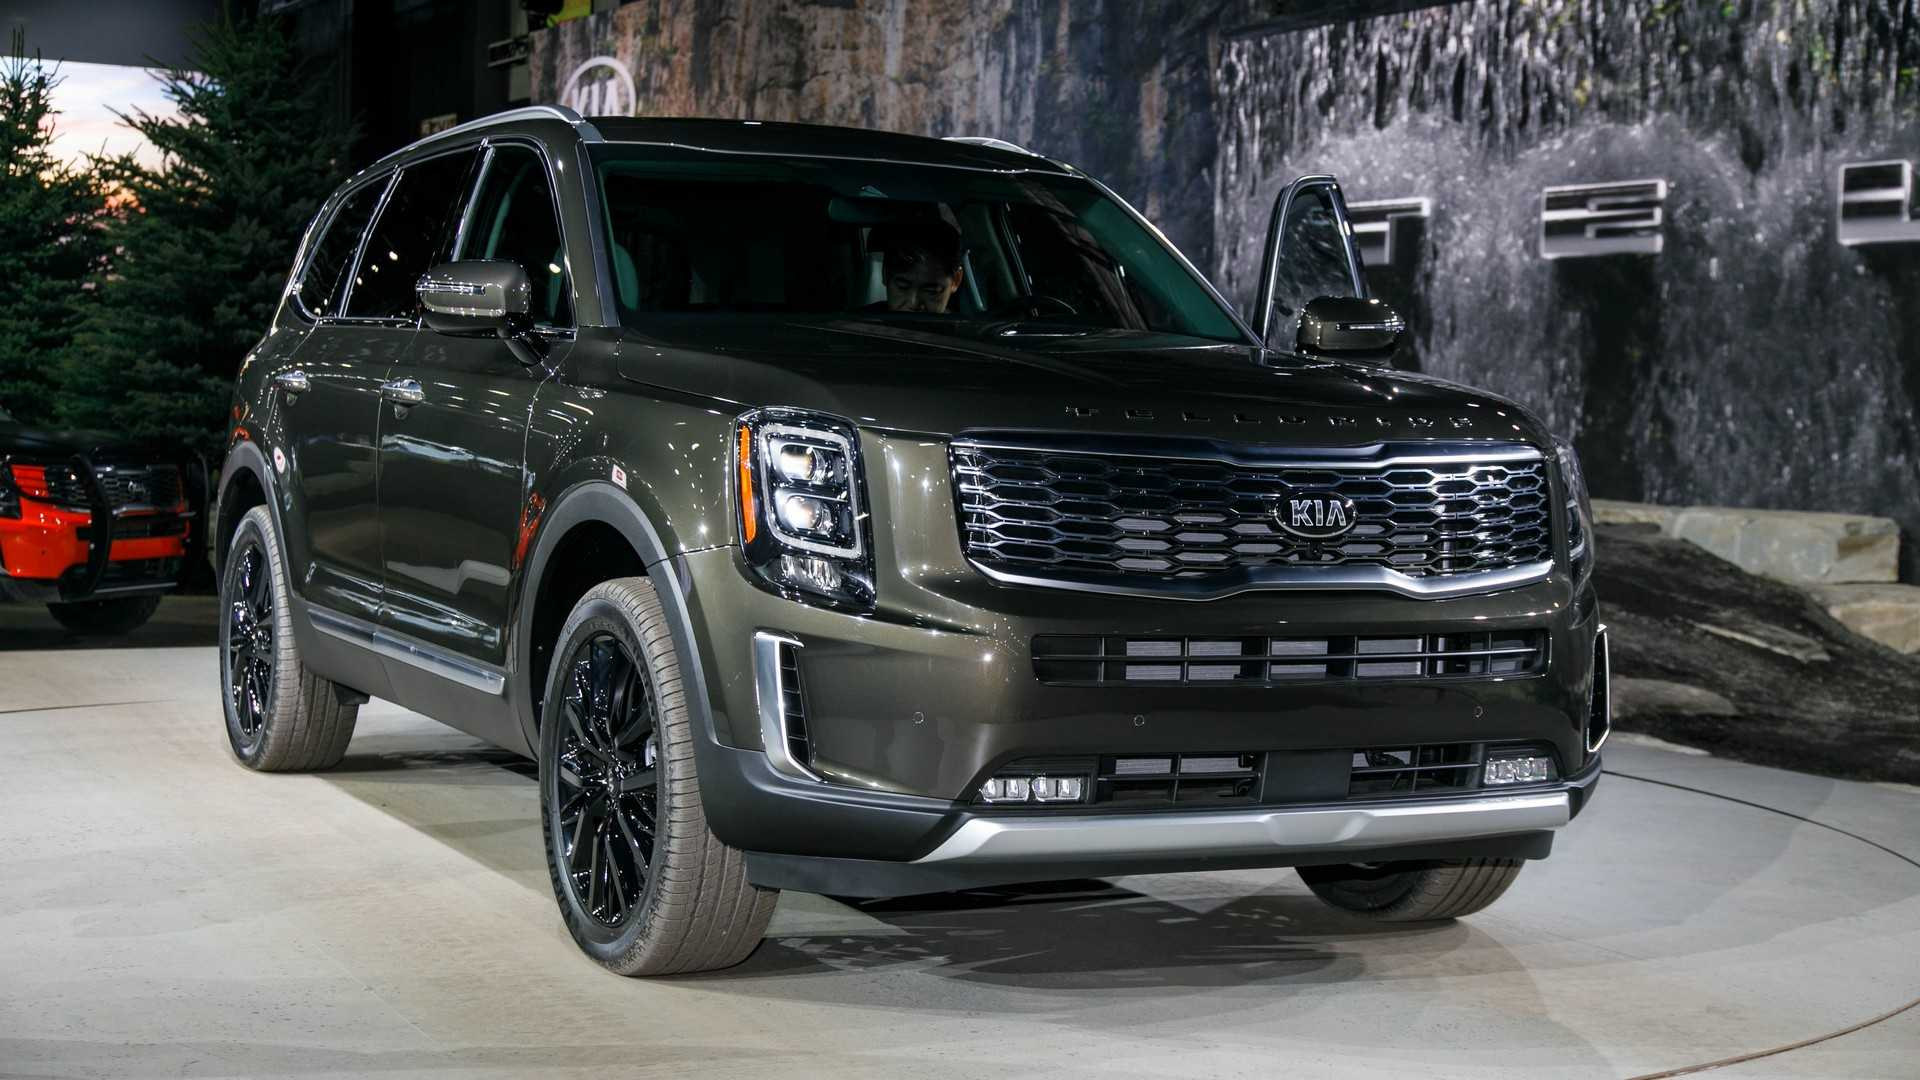 69 New 2020 Kia Telluride Lx Prices for 2020 Kia Telluride Lx